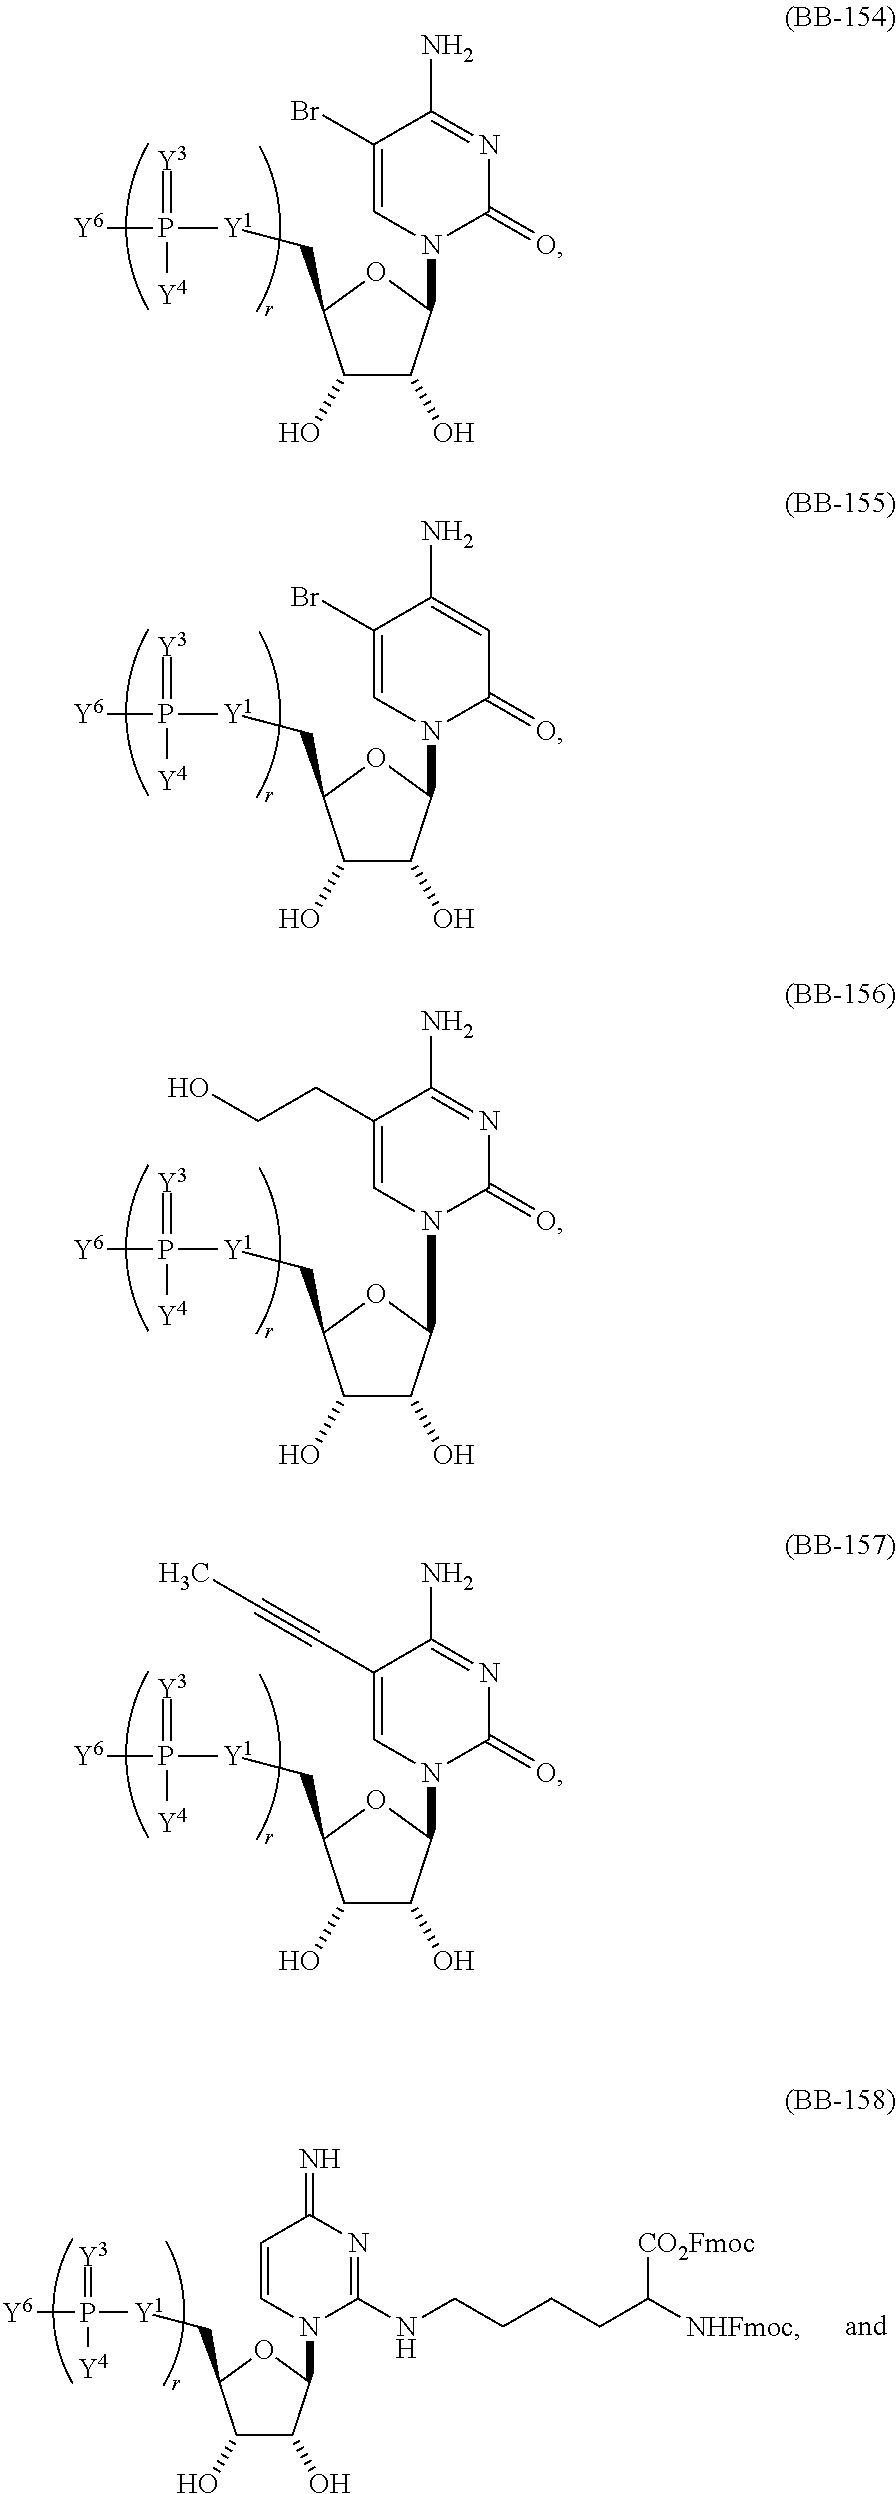 medium resolution of us9220755b2 modified polynucleotides for the production of proteins associated with blood and lymphatic disorders google patents